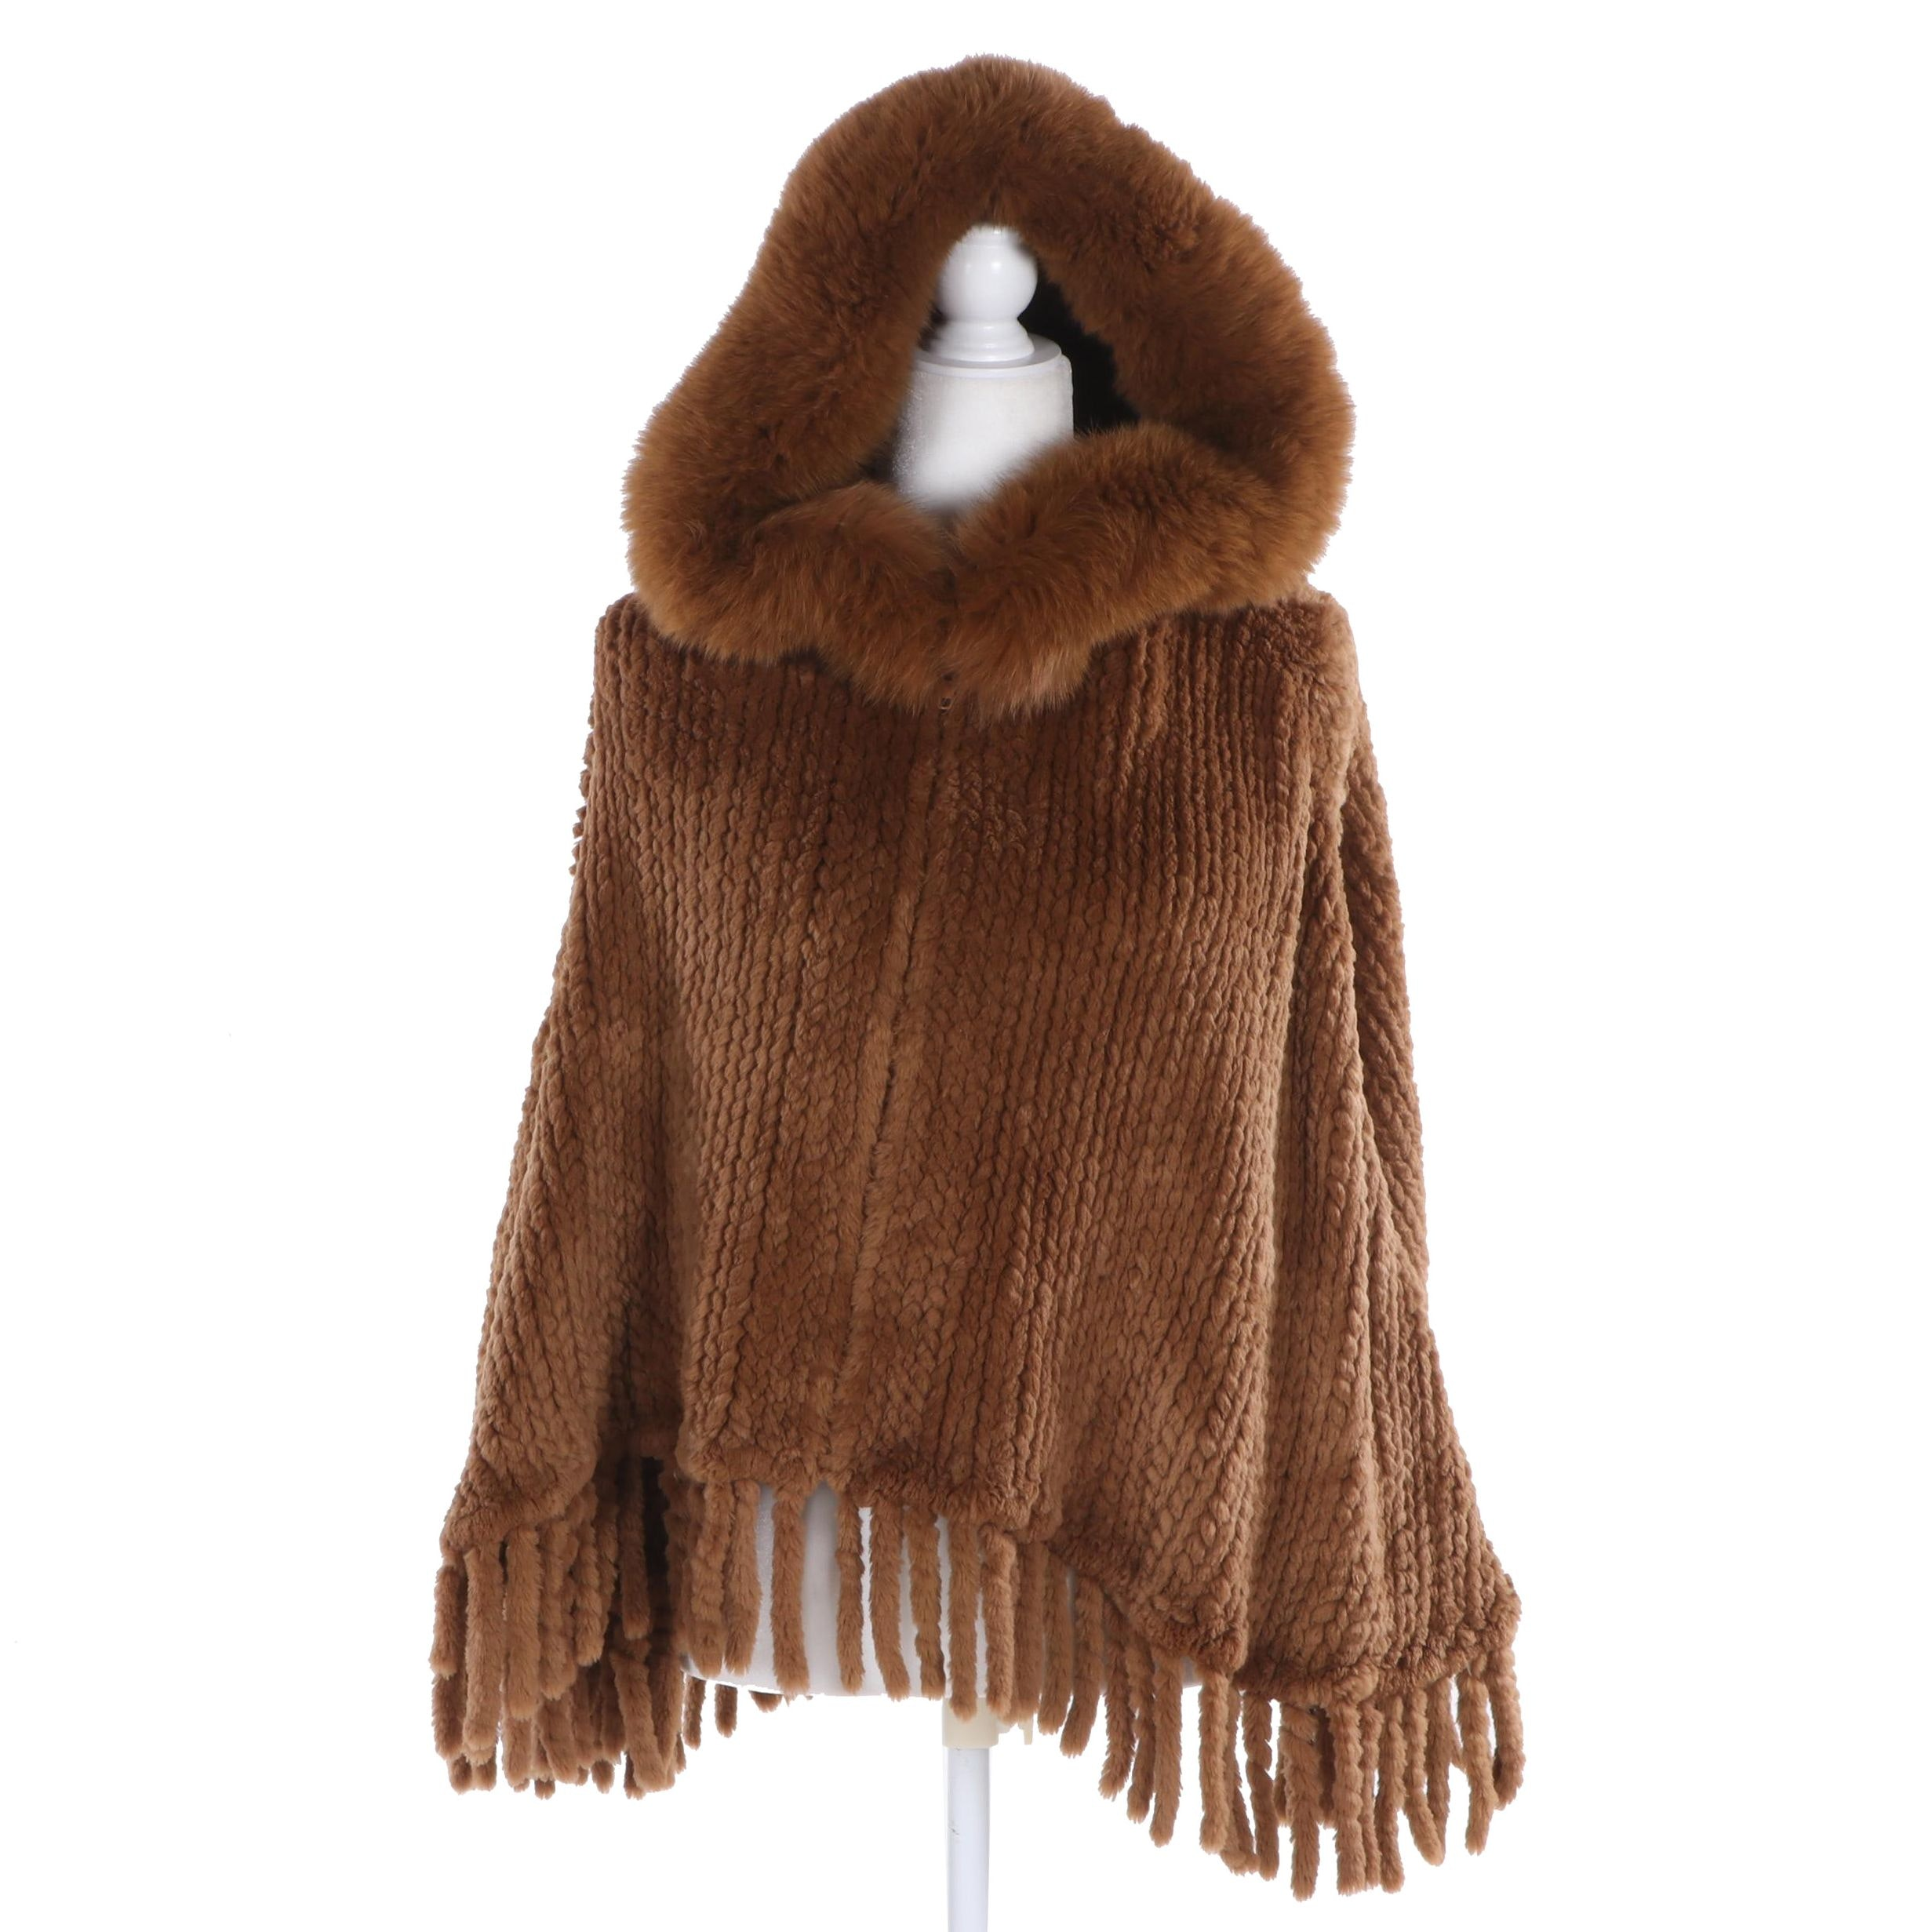 Knitted Rabbit Fur Hooded Poncho